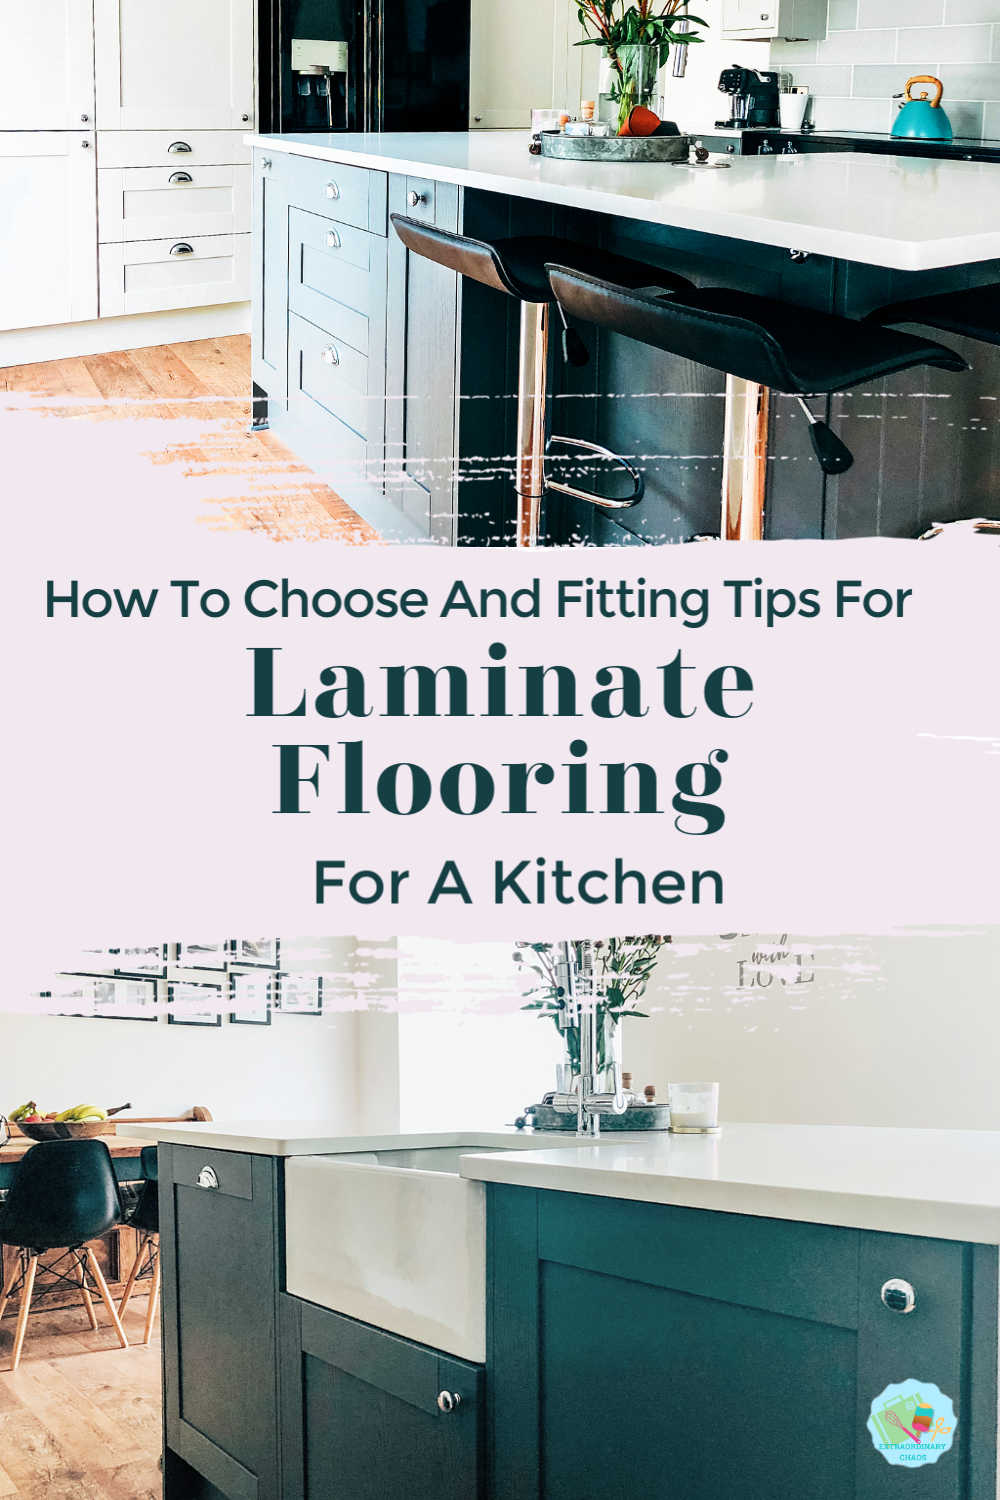 How to choose wood effect laminate flooring for a kitchen and is it a practical kitchen floor option for families with kids and pets